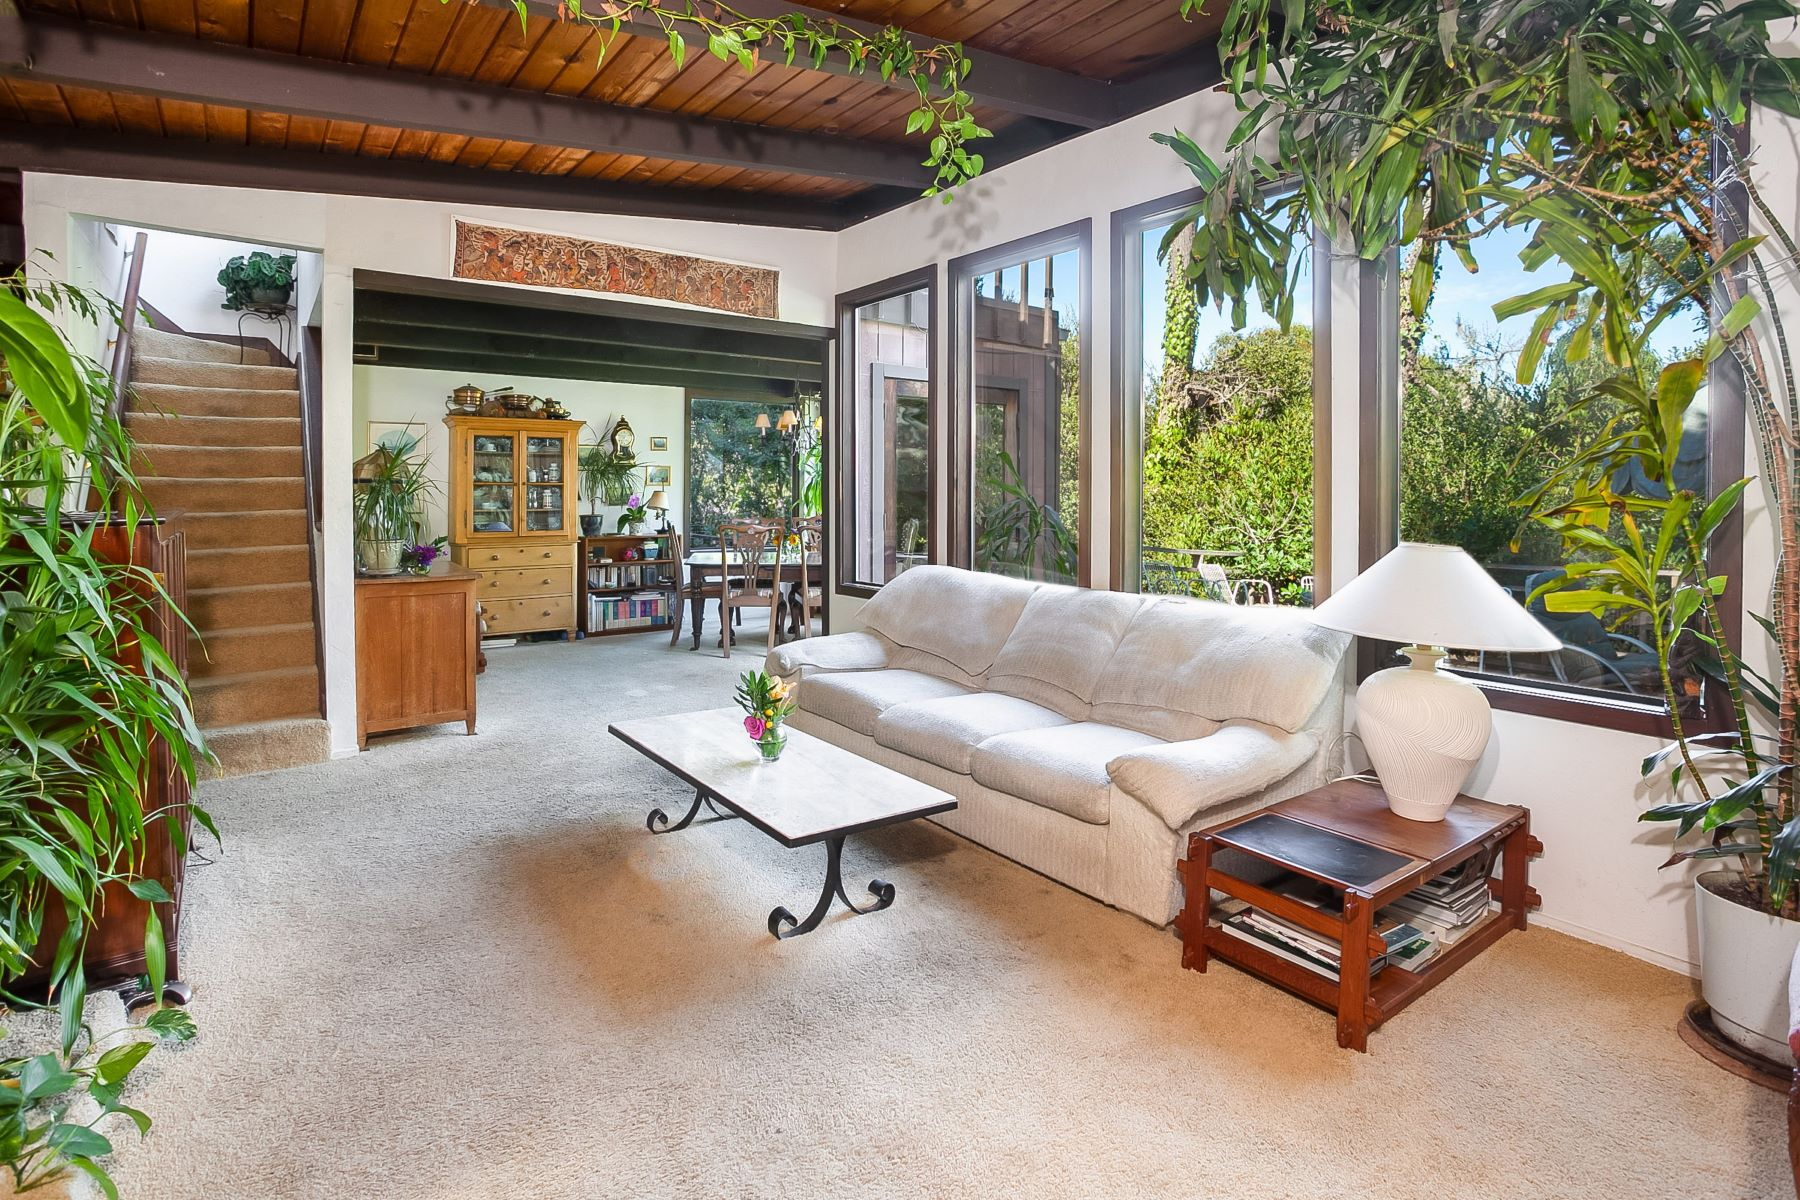 Single Family Homes for Sale at Tiburon Investment Opportunity 4350 Paradise Dr Belvedere Tiburon, California 94920 United States